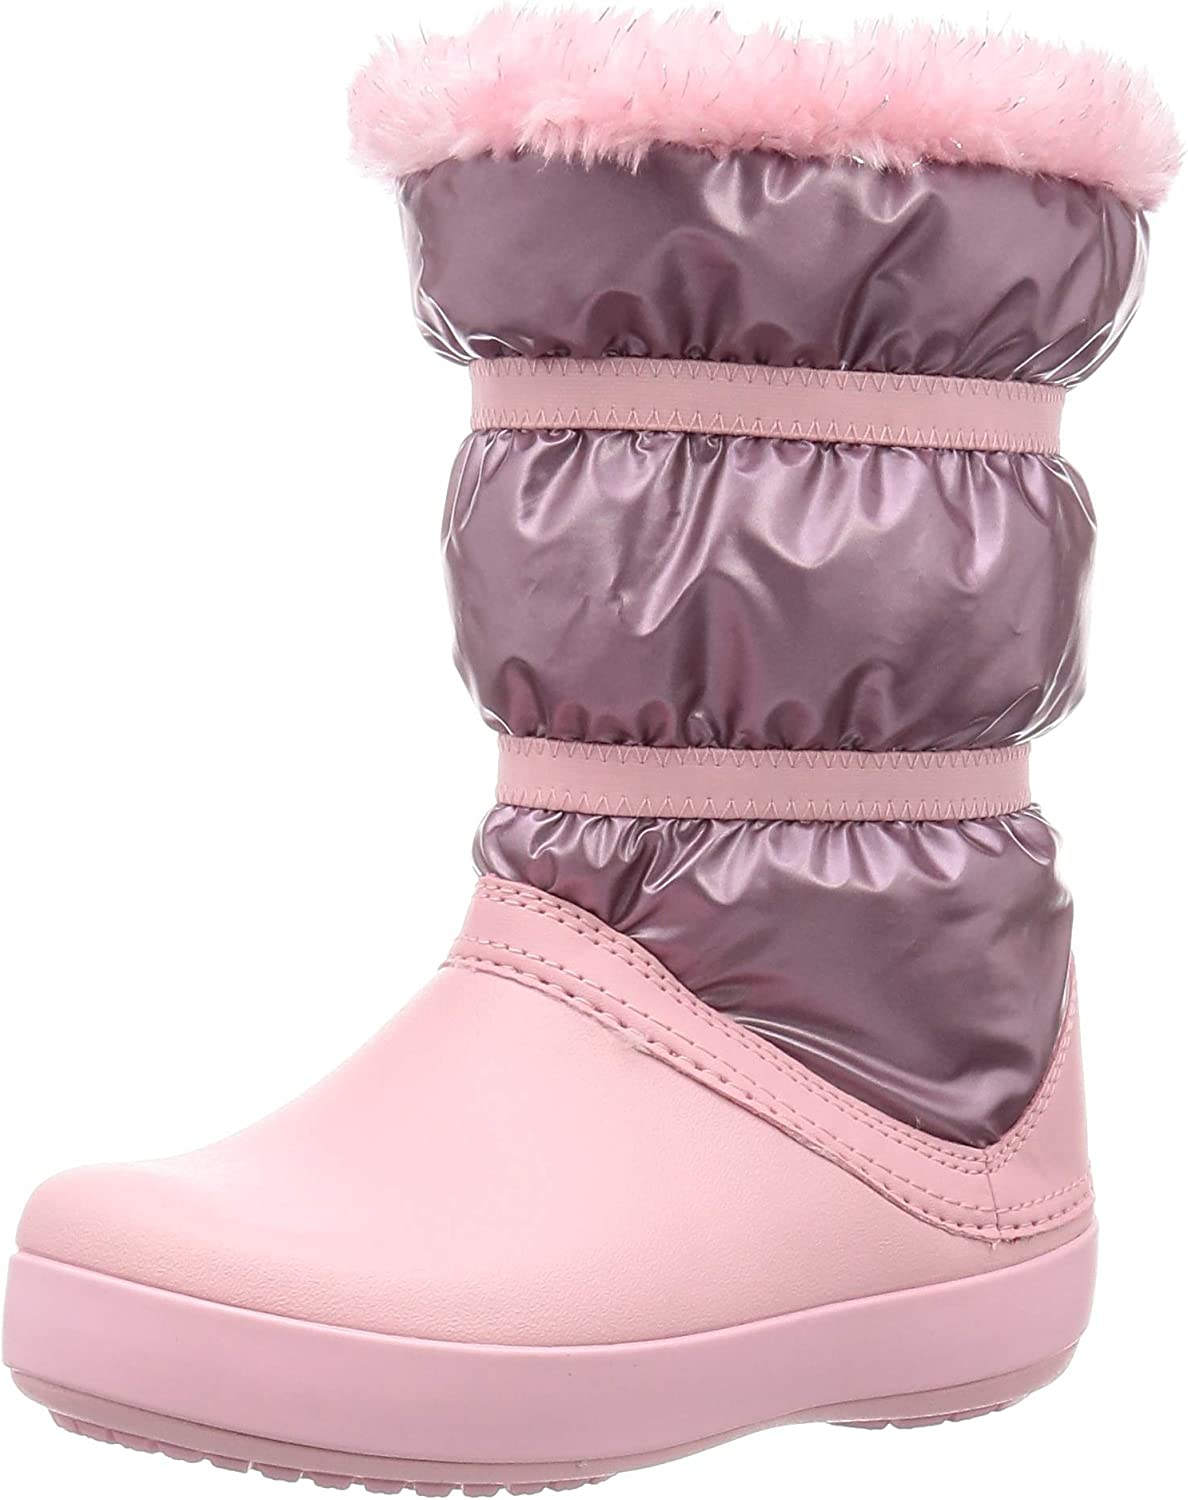 Crocs Manufacturer regenerated product Crocband LodgePoint Metallic Boot Snow Rose M Gold 11 In a popularity US